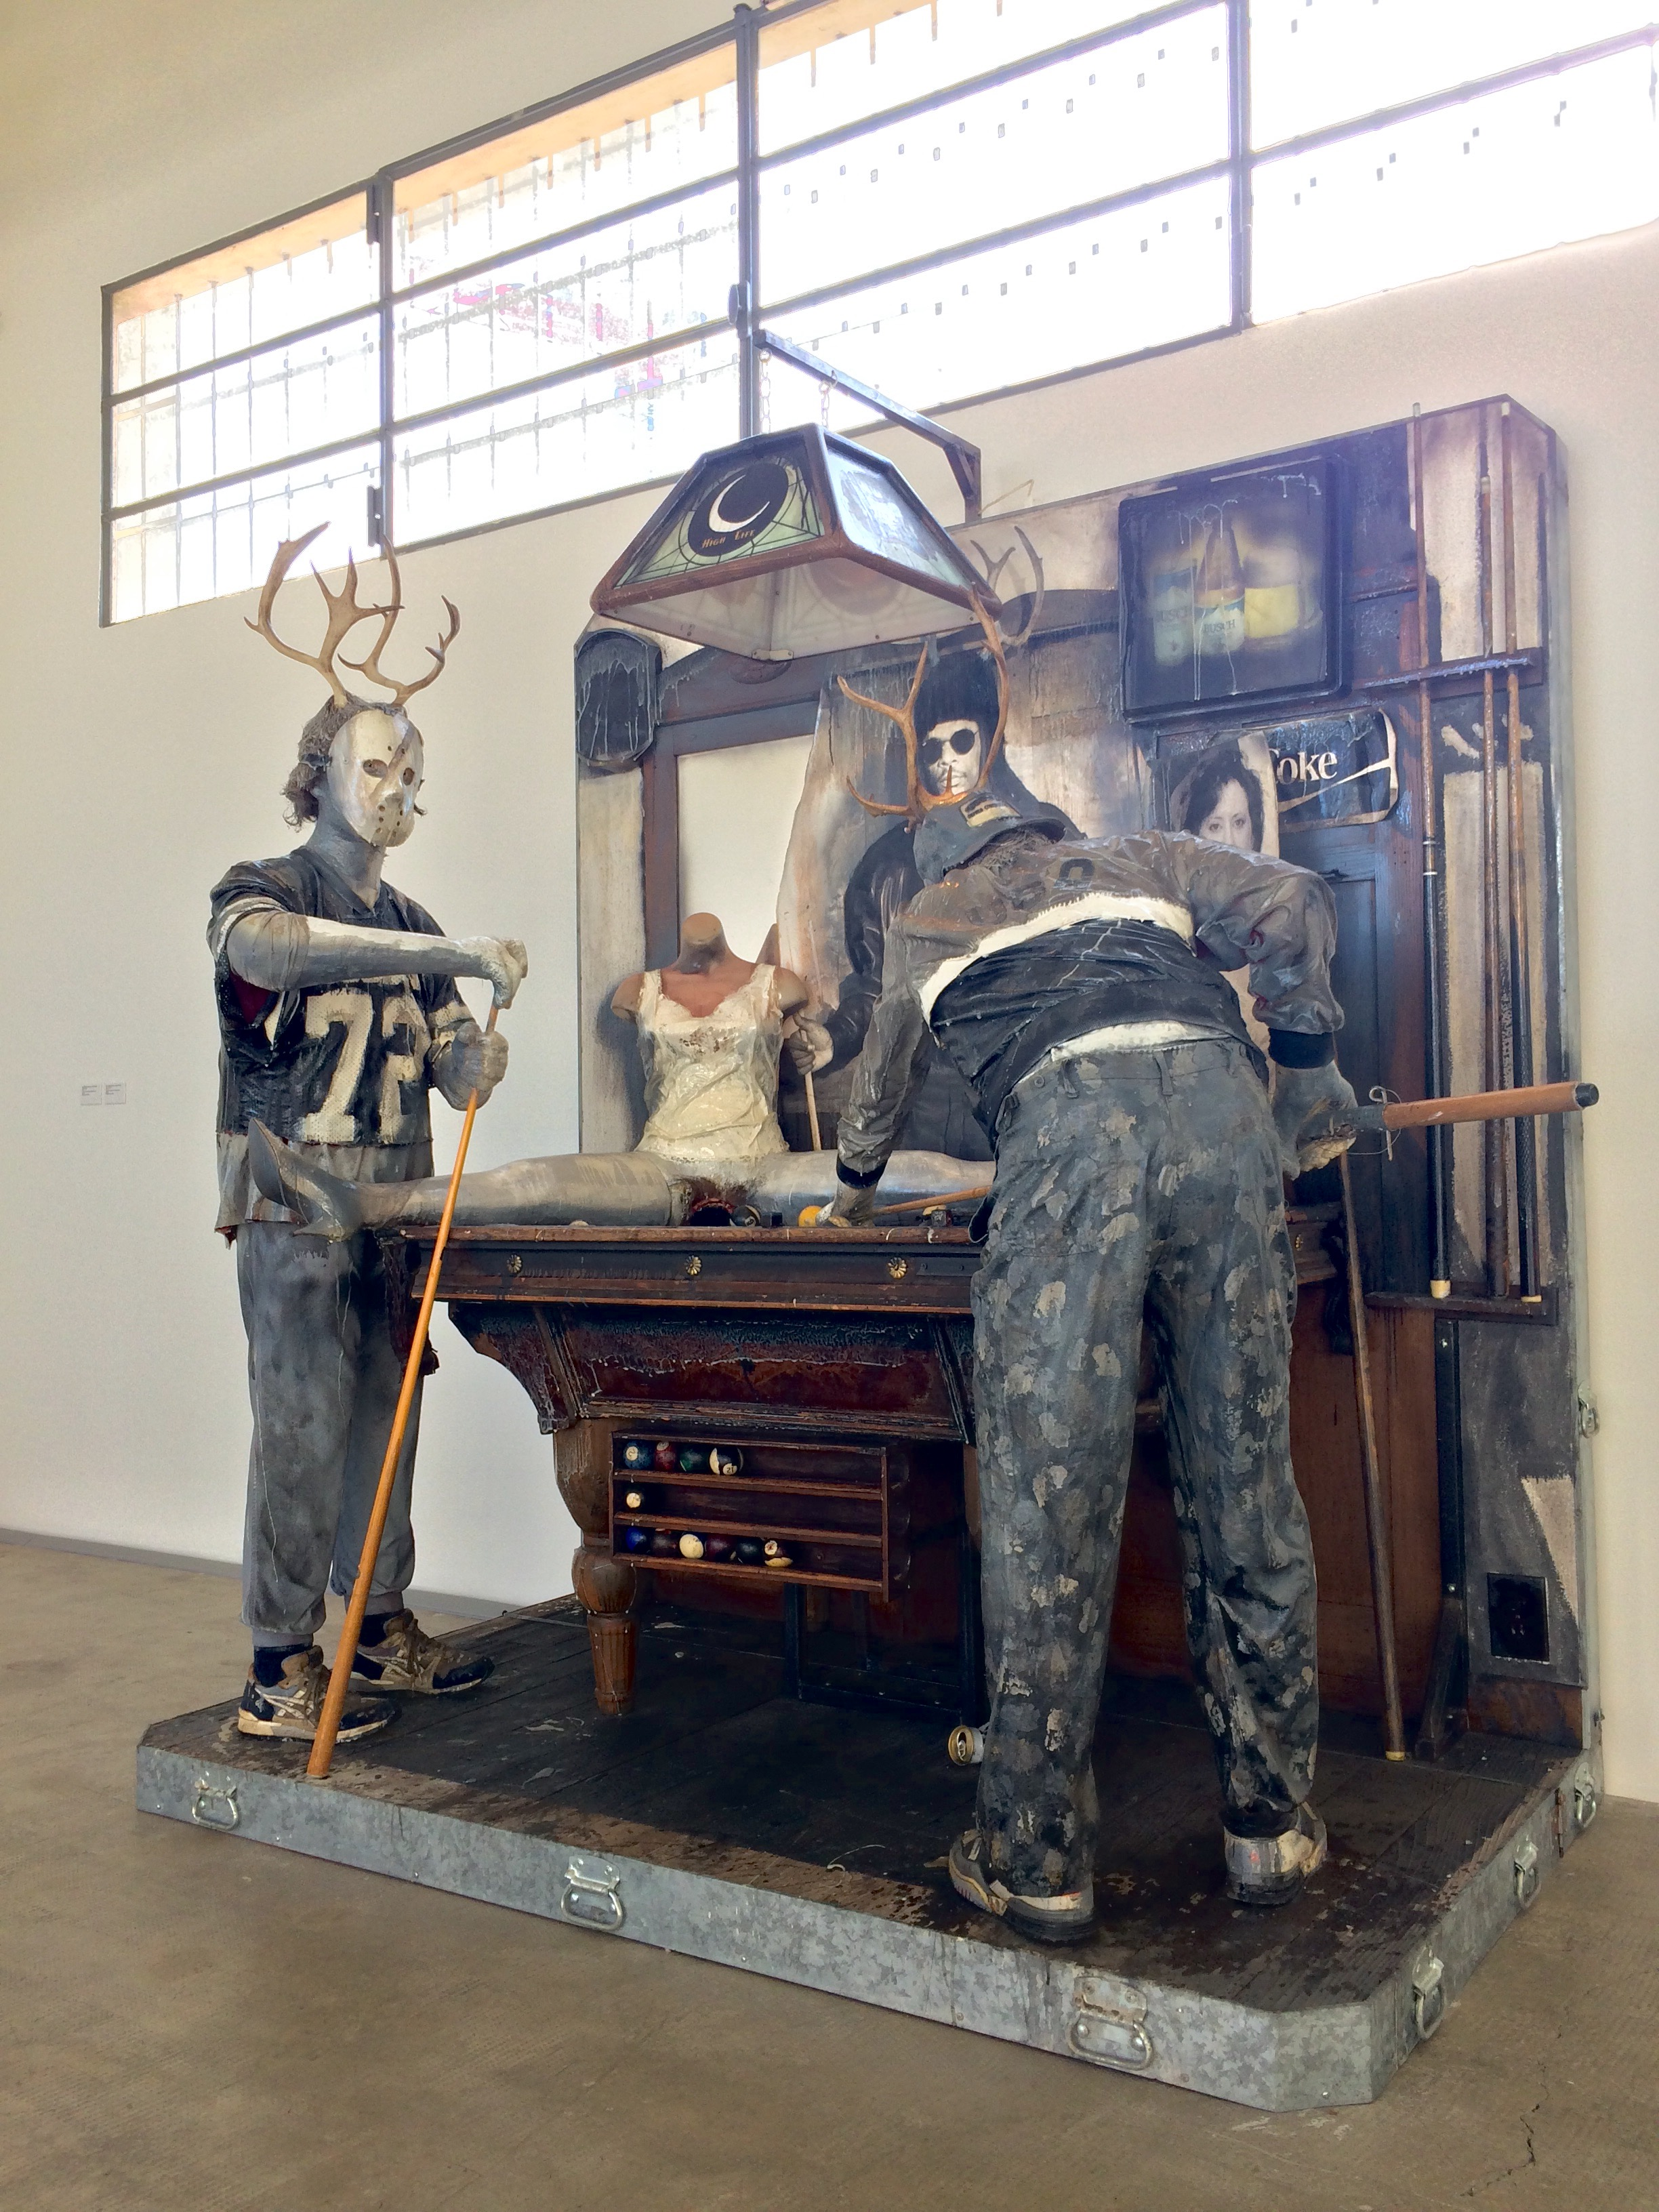 "Edward Kienholz & Nancy Reddin Kienholz, ""The Pool Hall"" (1993). Mixed media tableau. Collection of the artist."